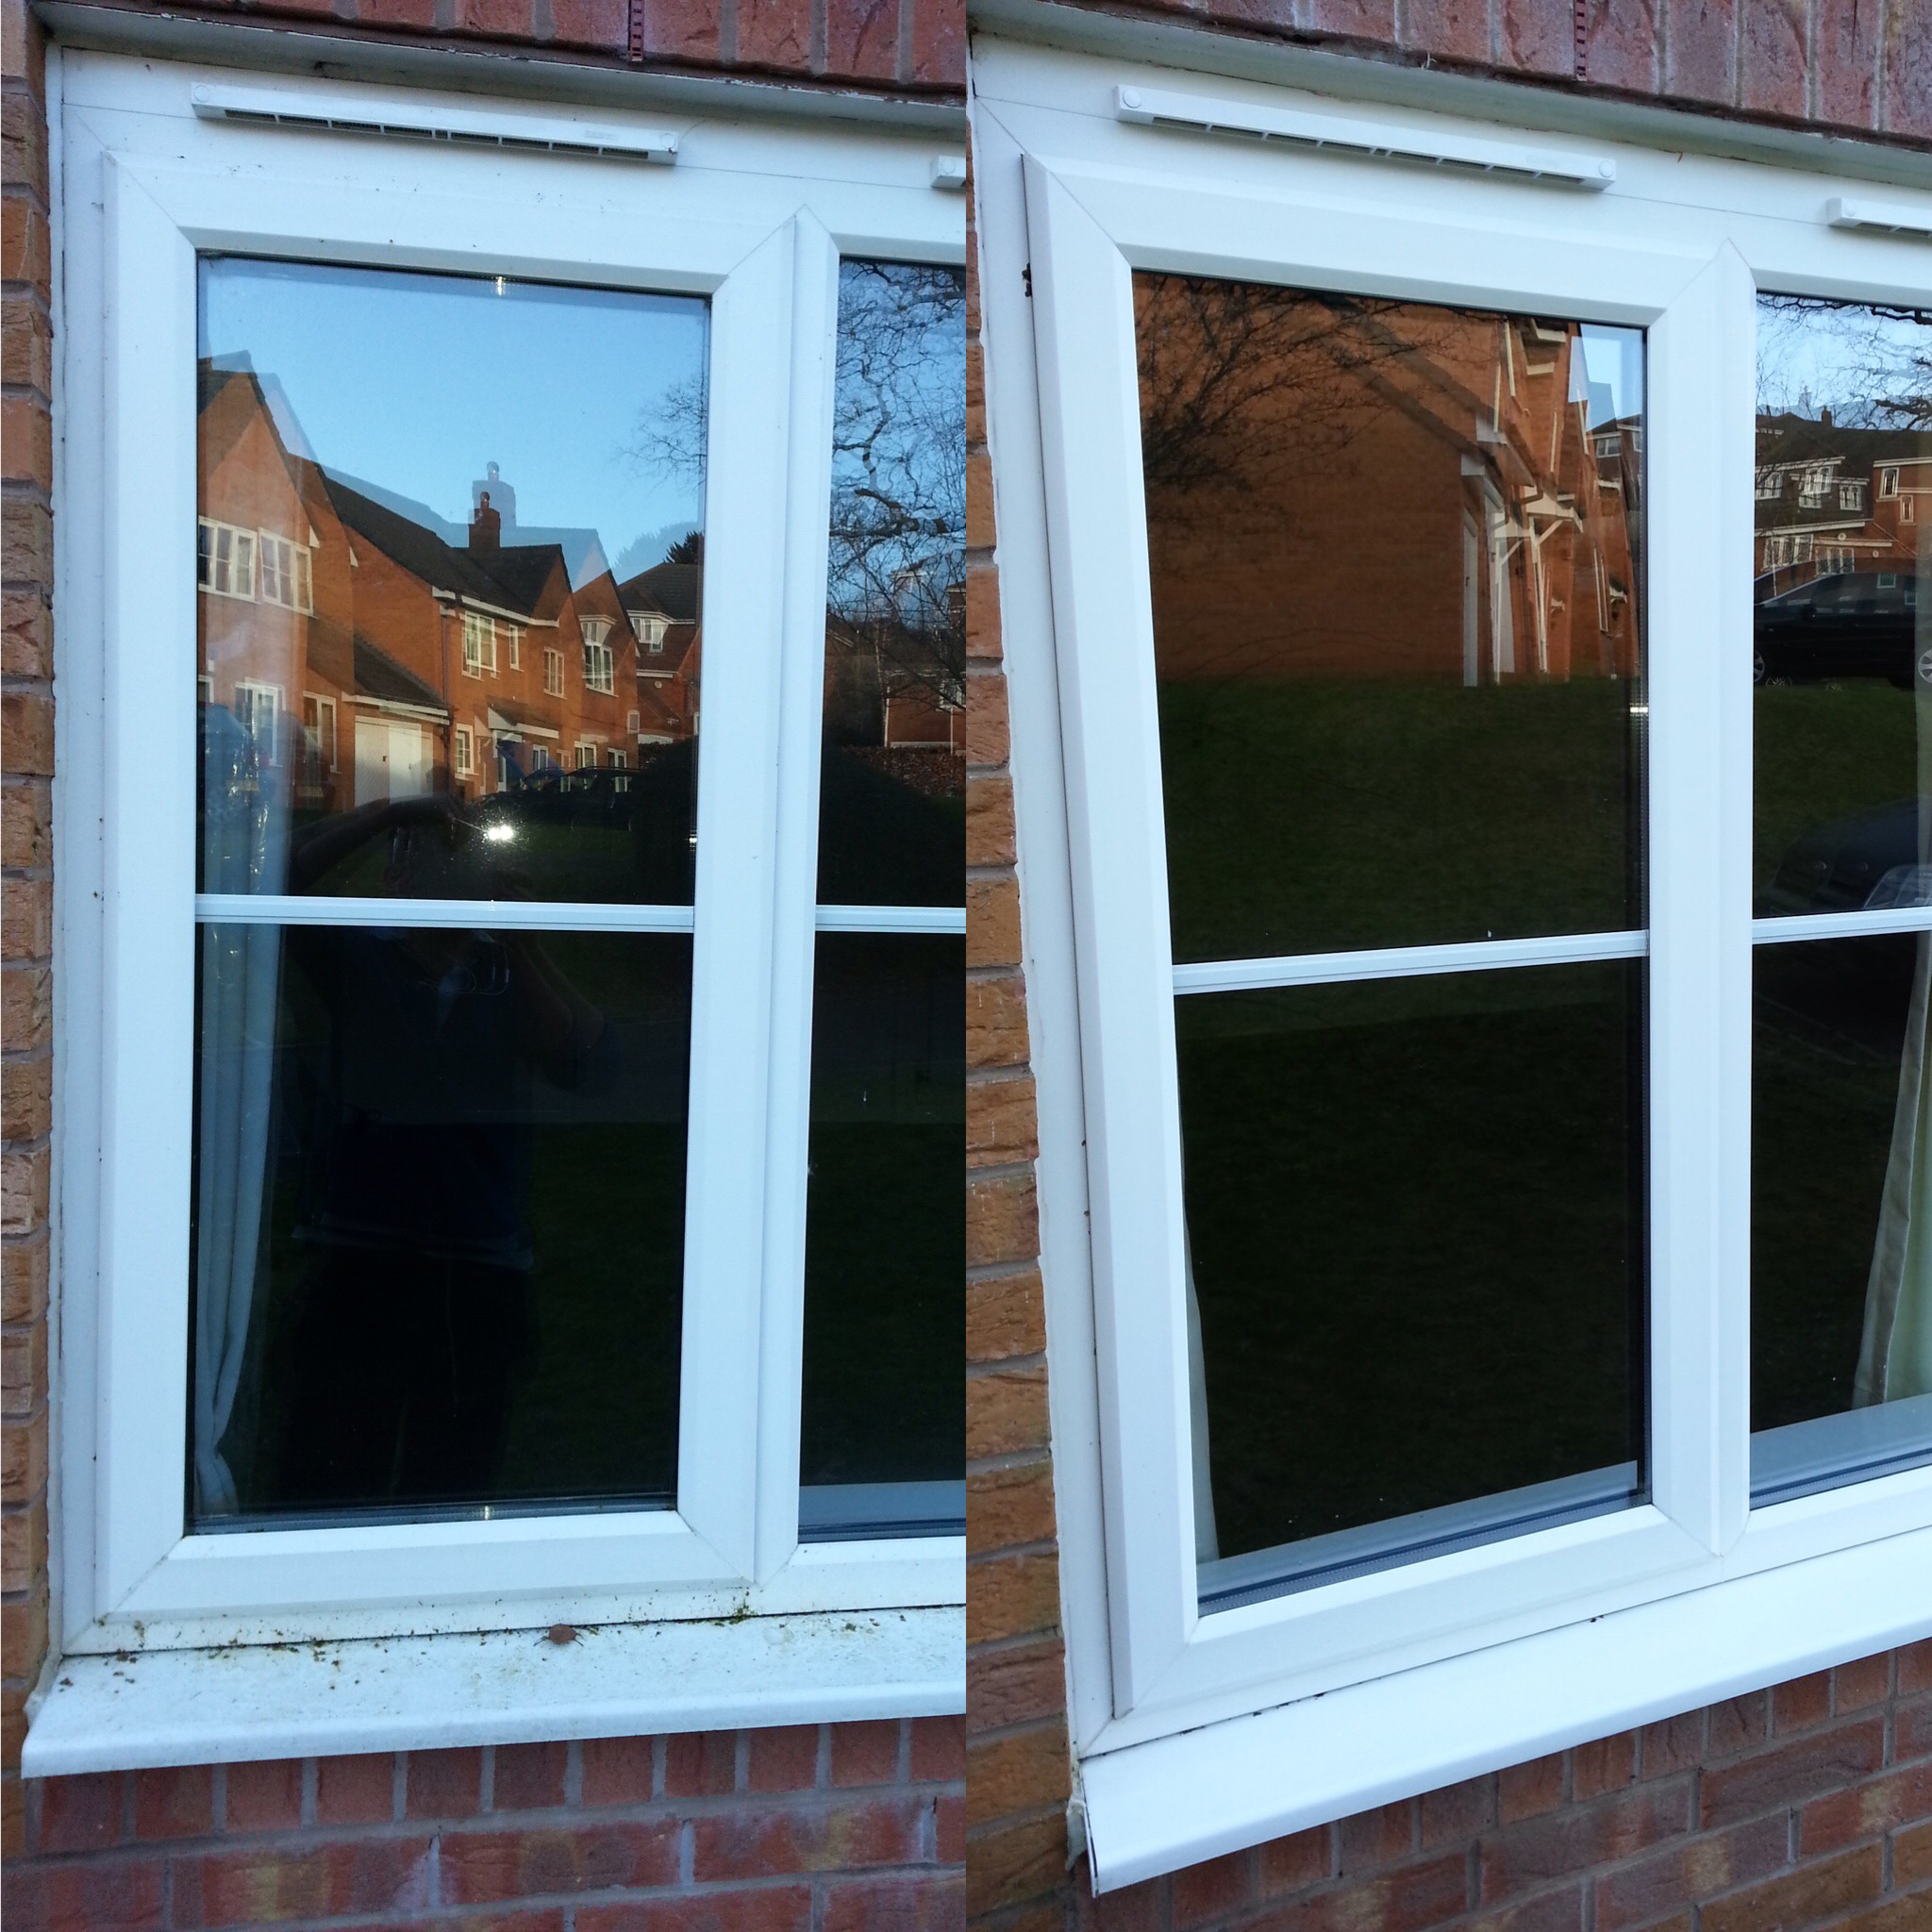 Window Clean - Before & After